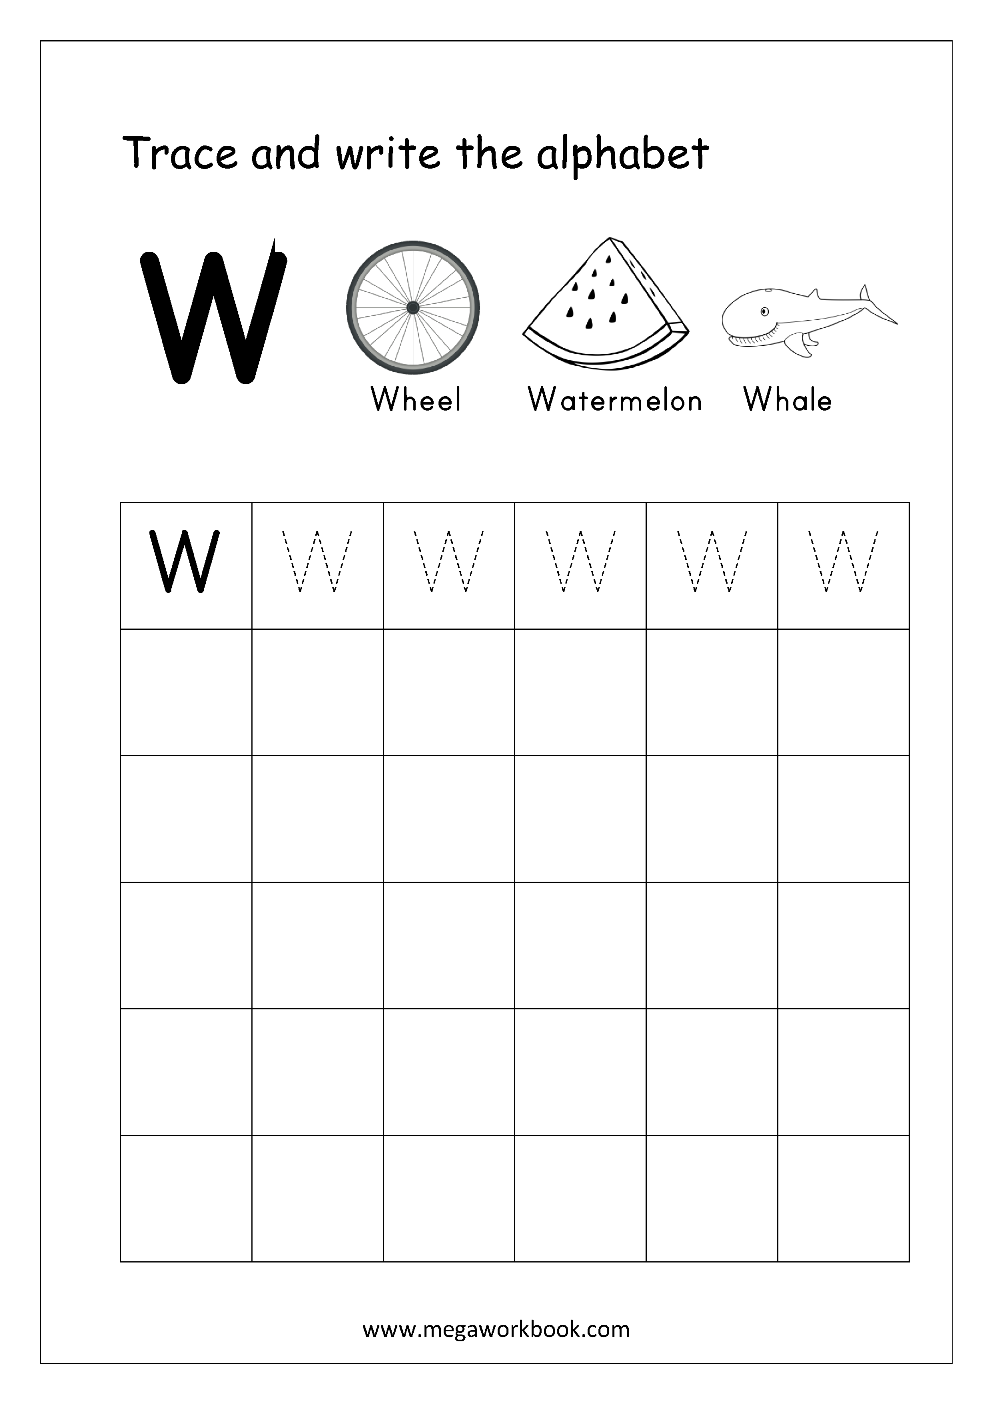 Worksheets Alphabet Writing Worksheets free english worksheets alphabet writing capital letters worksheet letter w